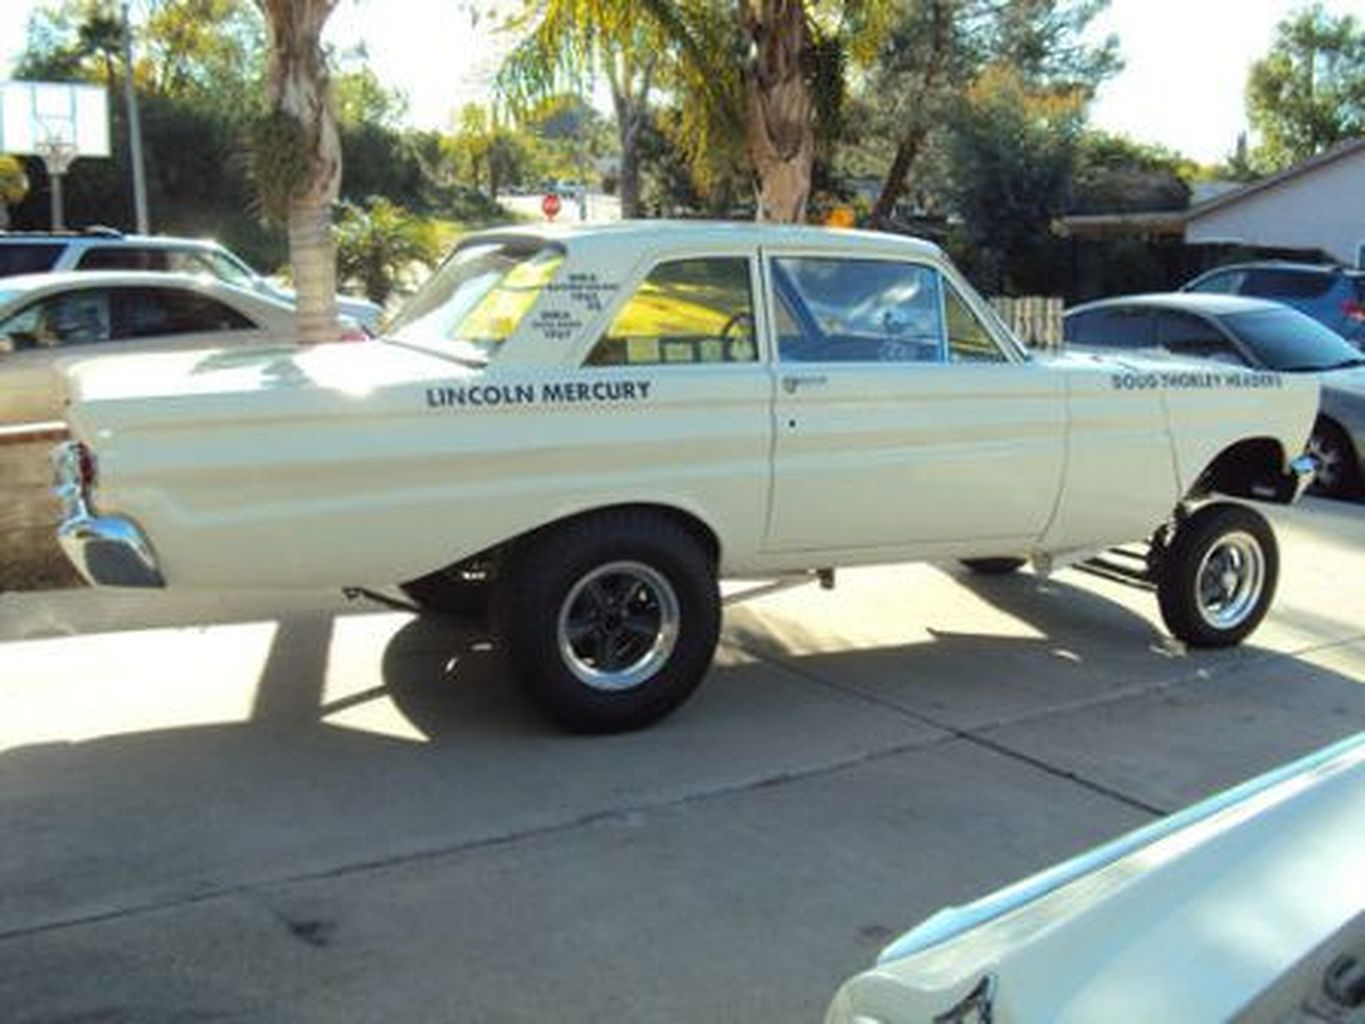 1961 ford falcon for sale racingjunk classifieds - Ford Muscle Forums Ford Muscle Cars Tech Forum Falcon Gassers Pinterest Falcons Ford And Cars